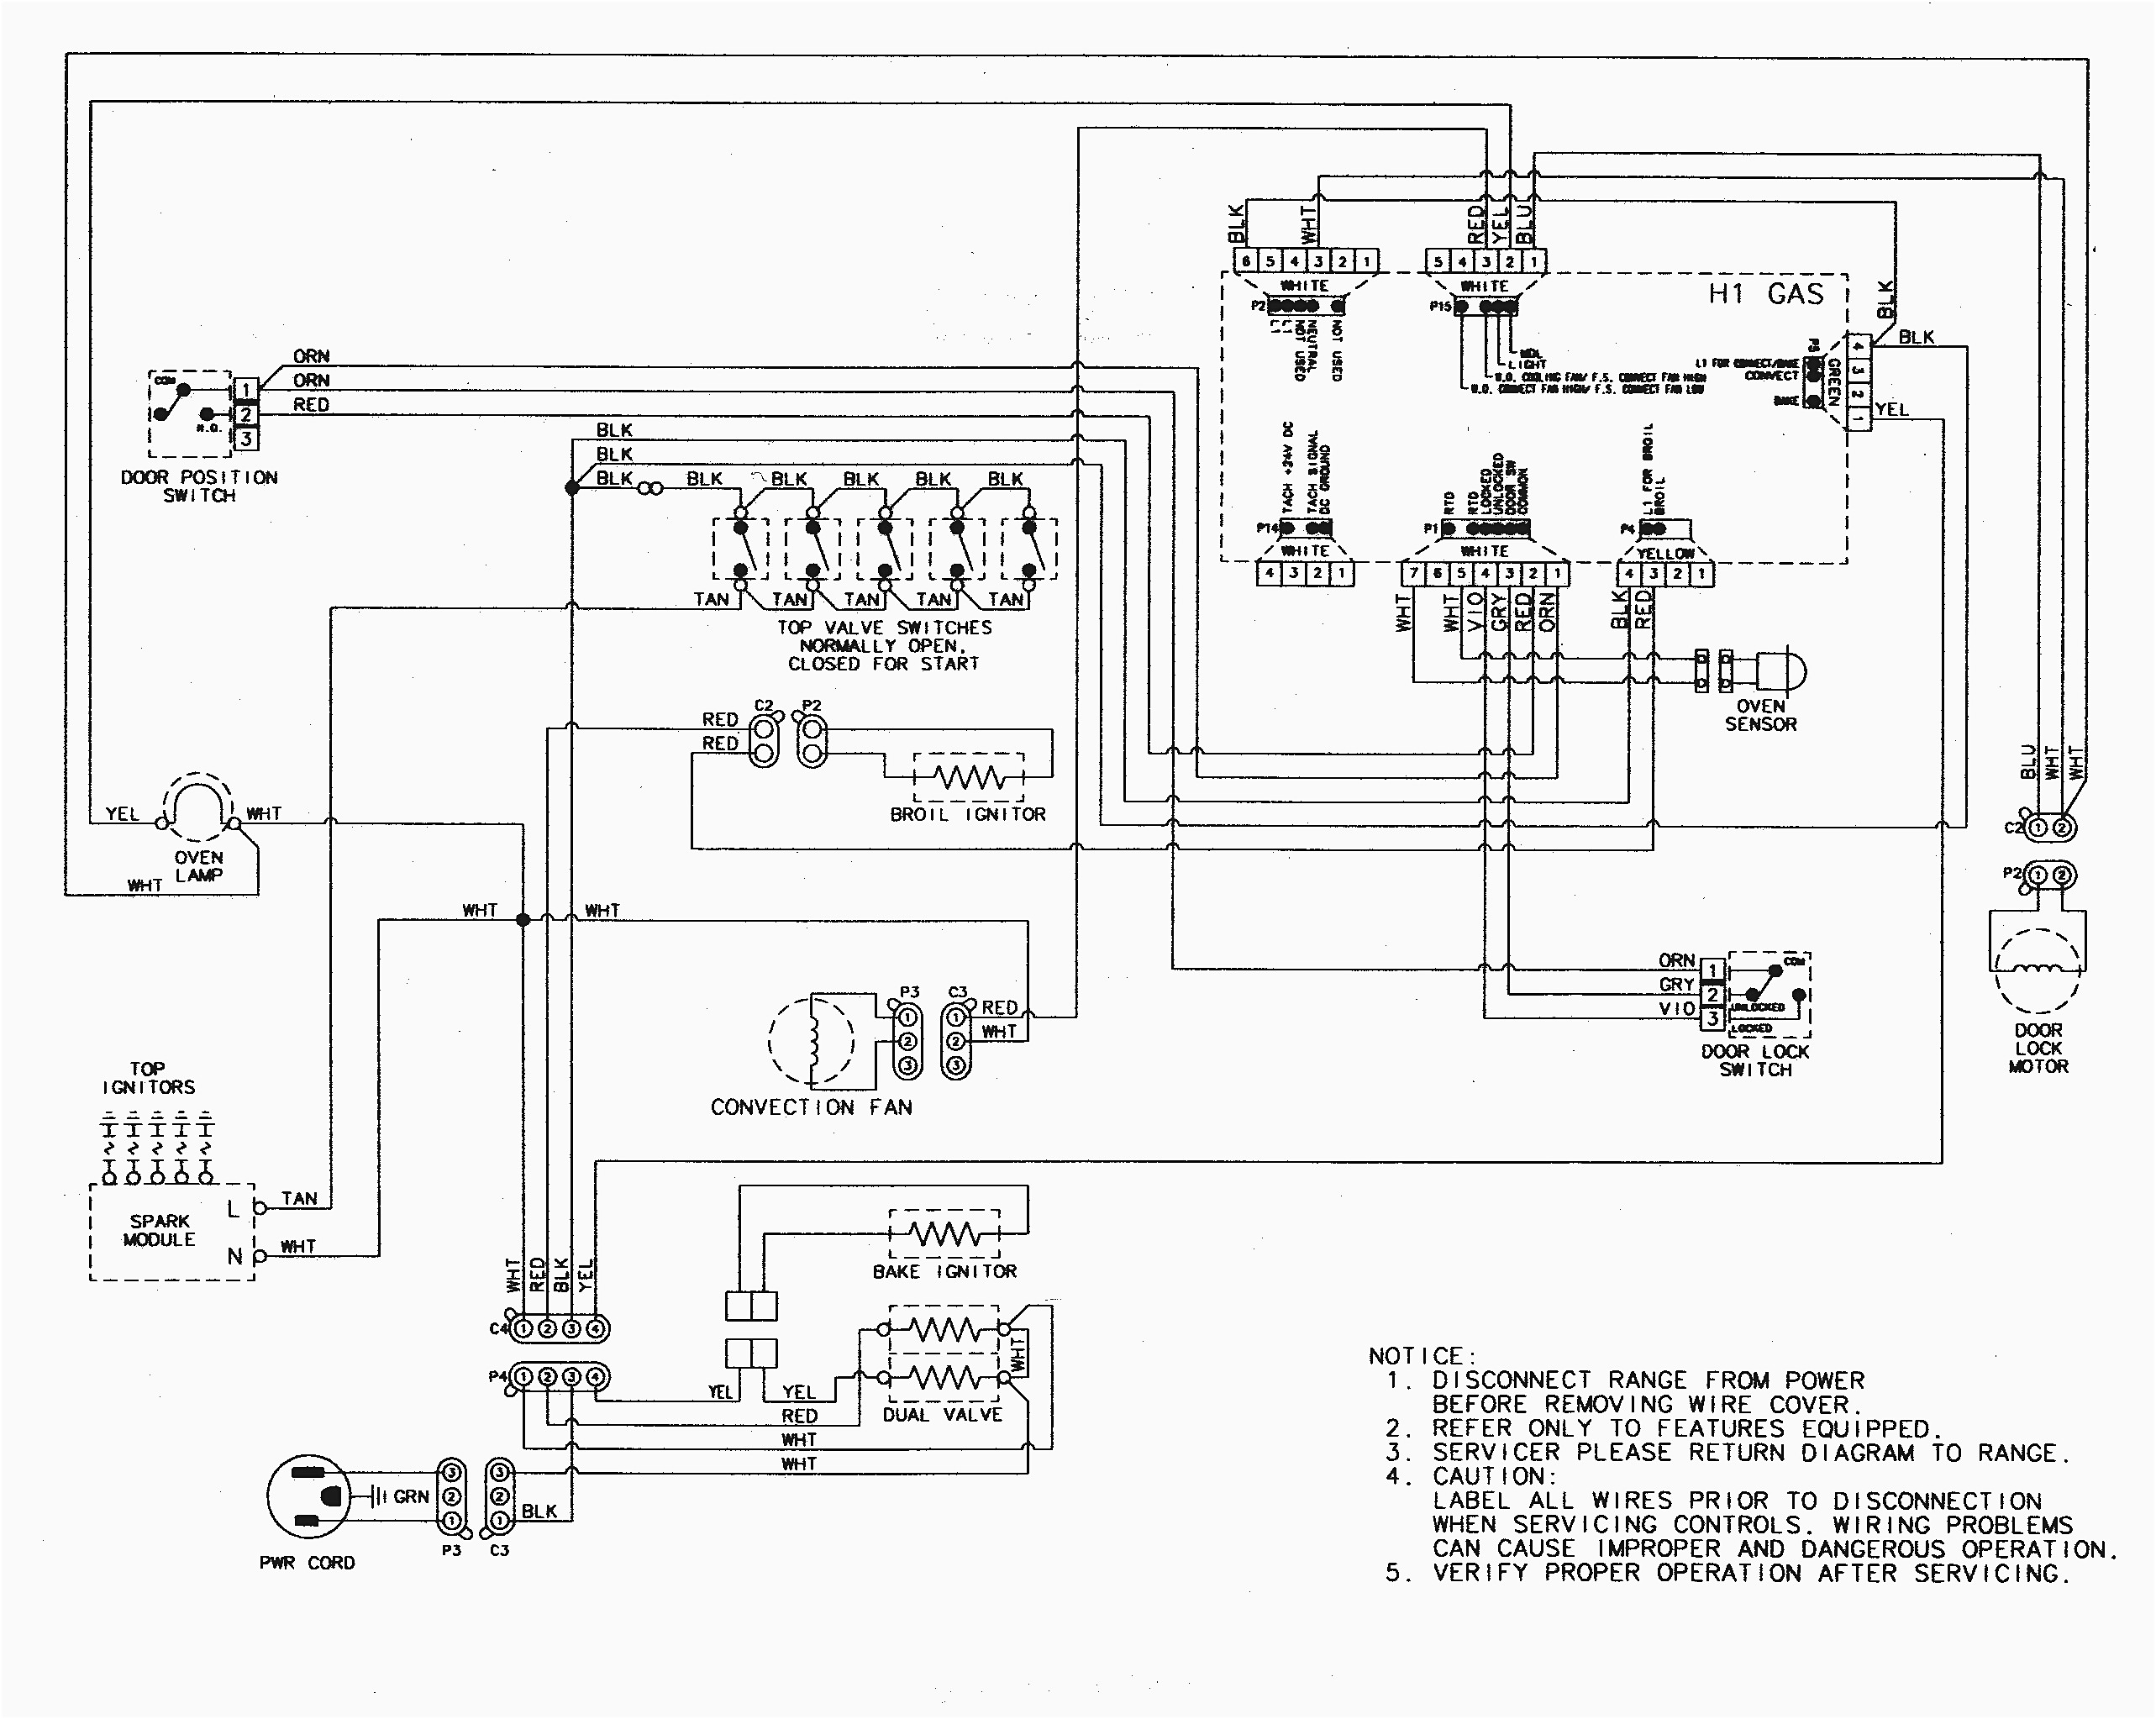 Diagram Countertop Convection Oven Wiring Diagram Full Version Hd Quality Wiring Diagram Diagramman1b Cinema4dtutorial It